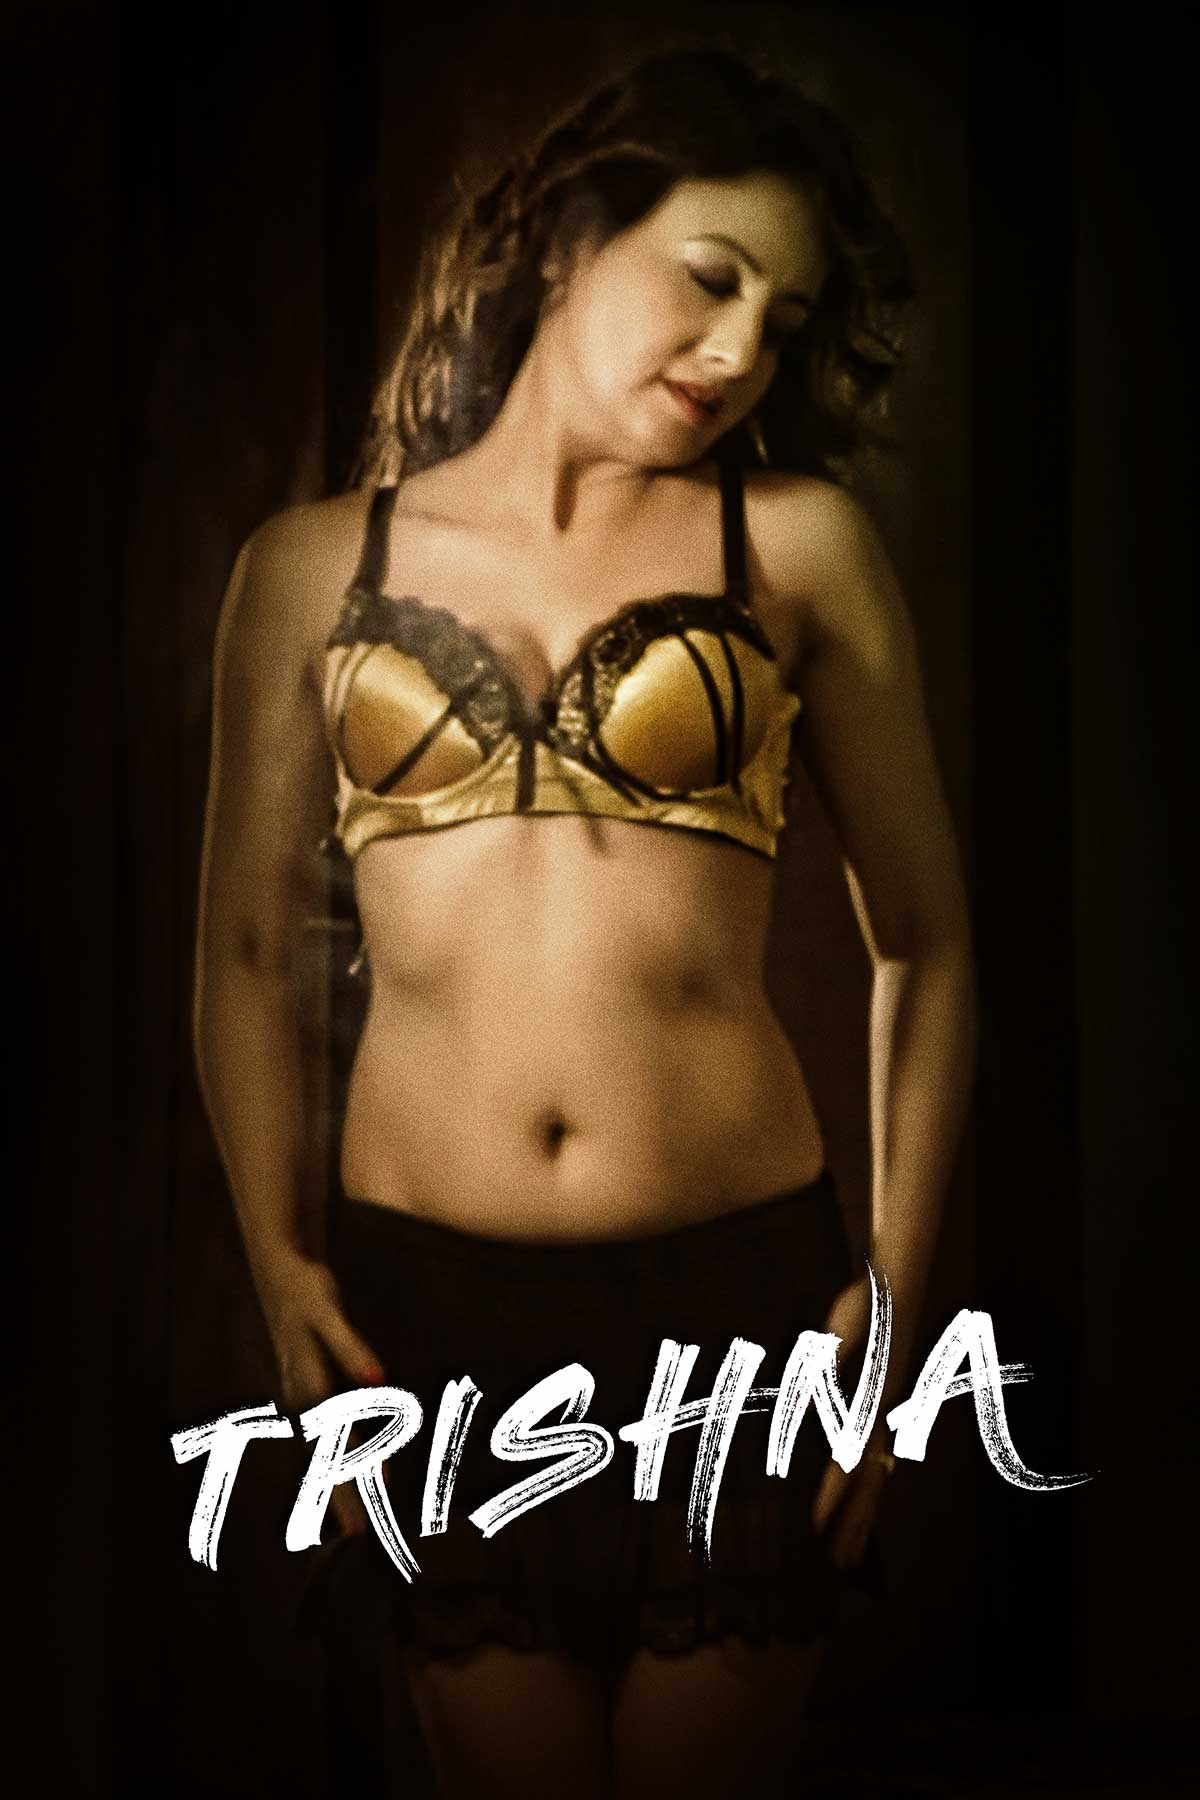 Trishna 2020 S01 Hindi Kooku App Complete Web Series 400MB HDRip 480p Download